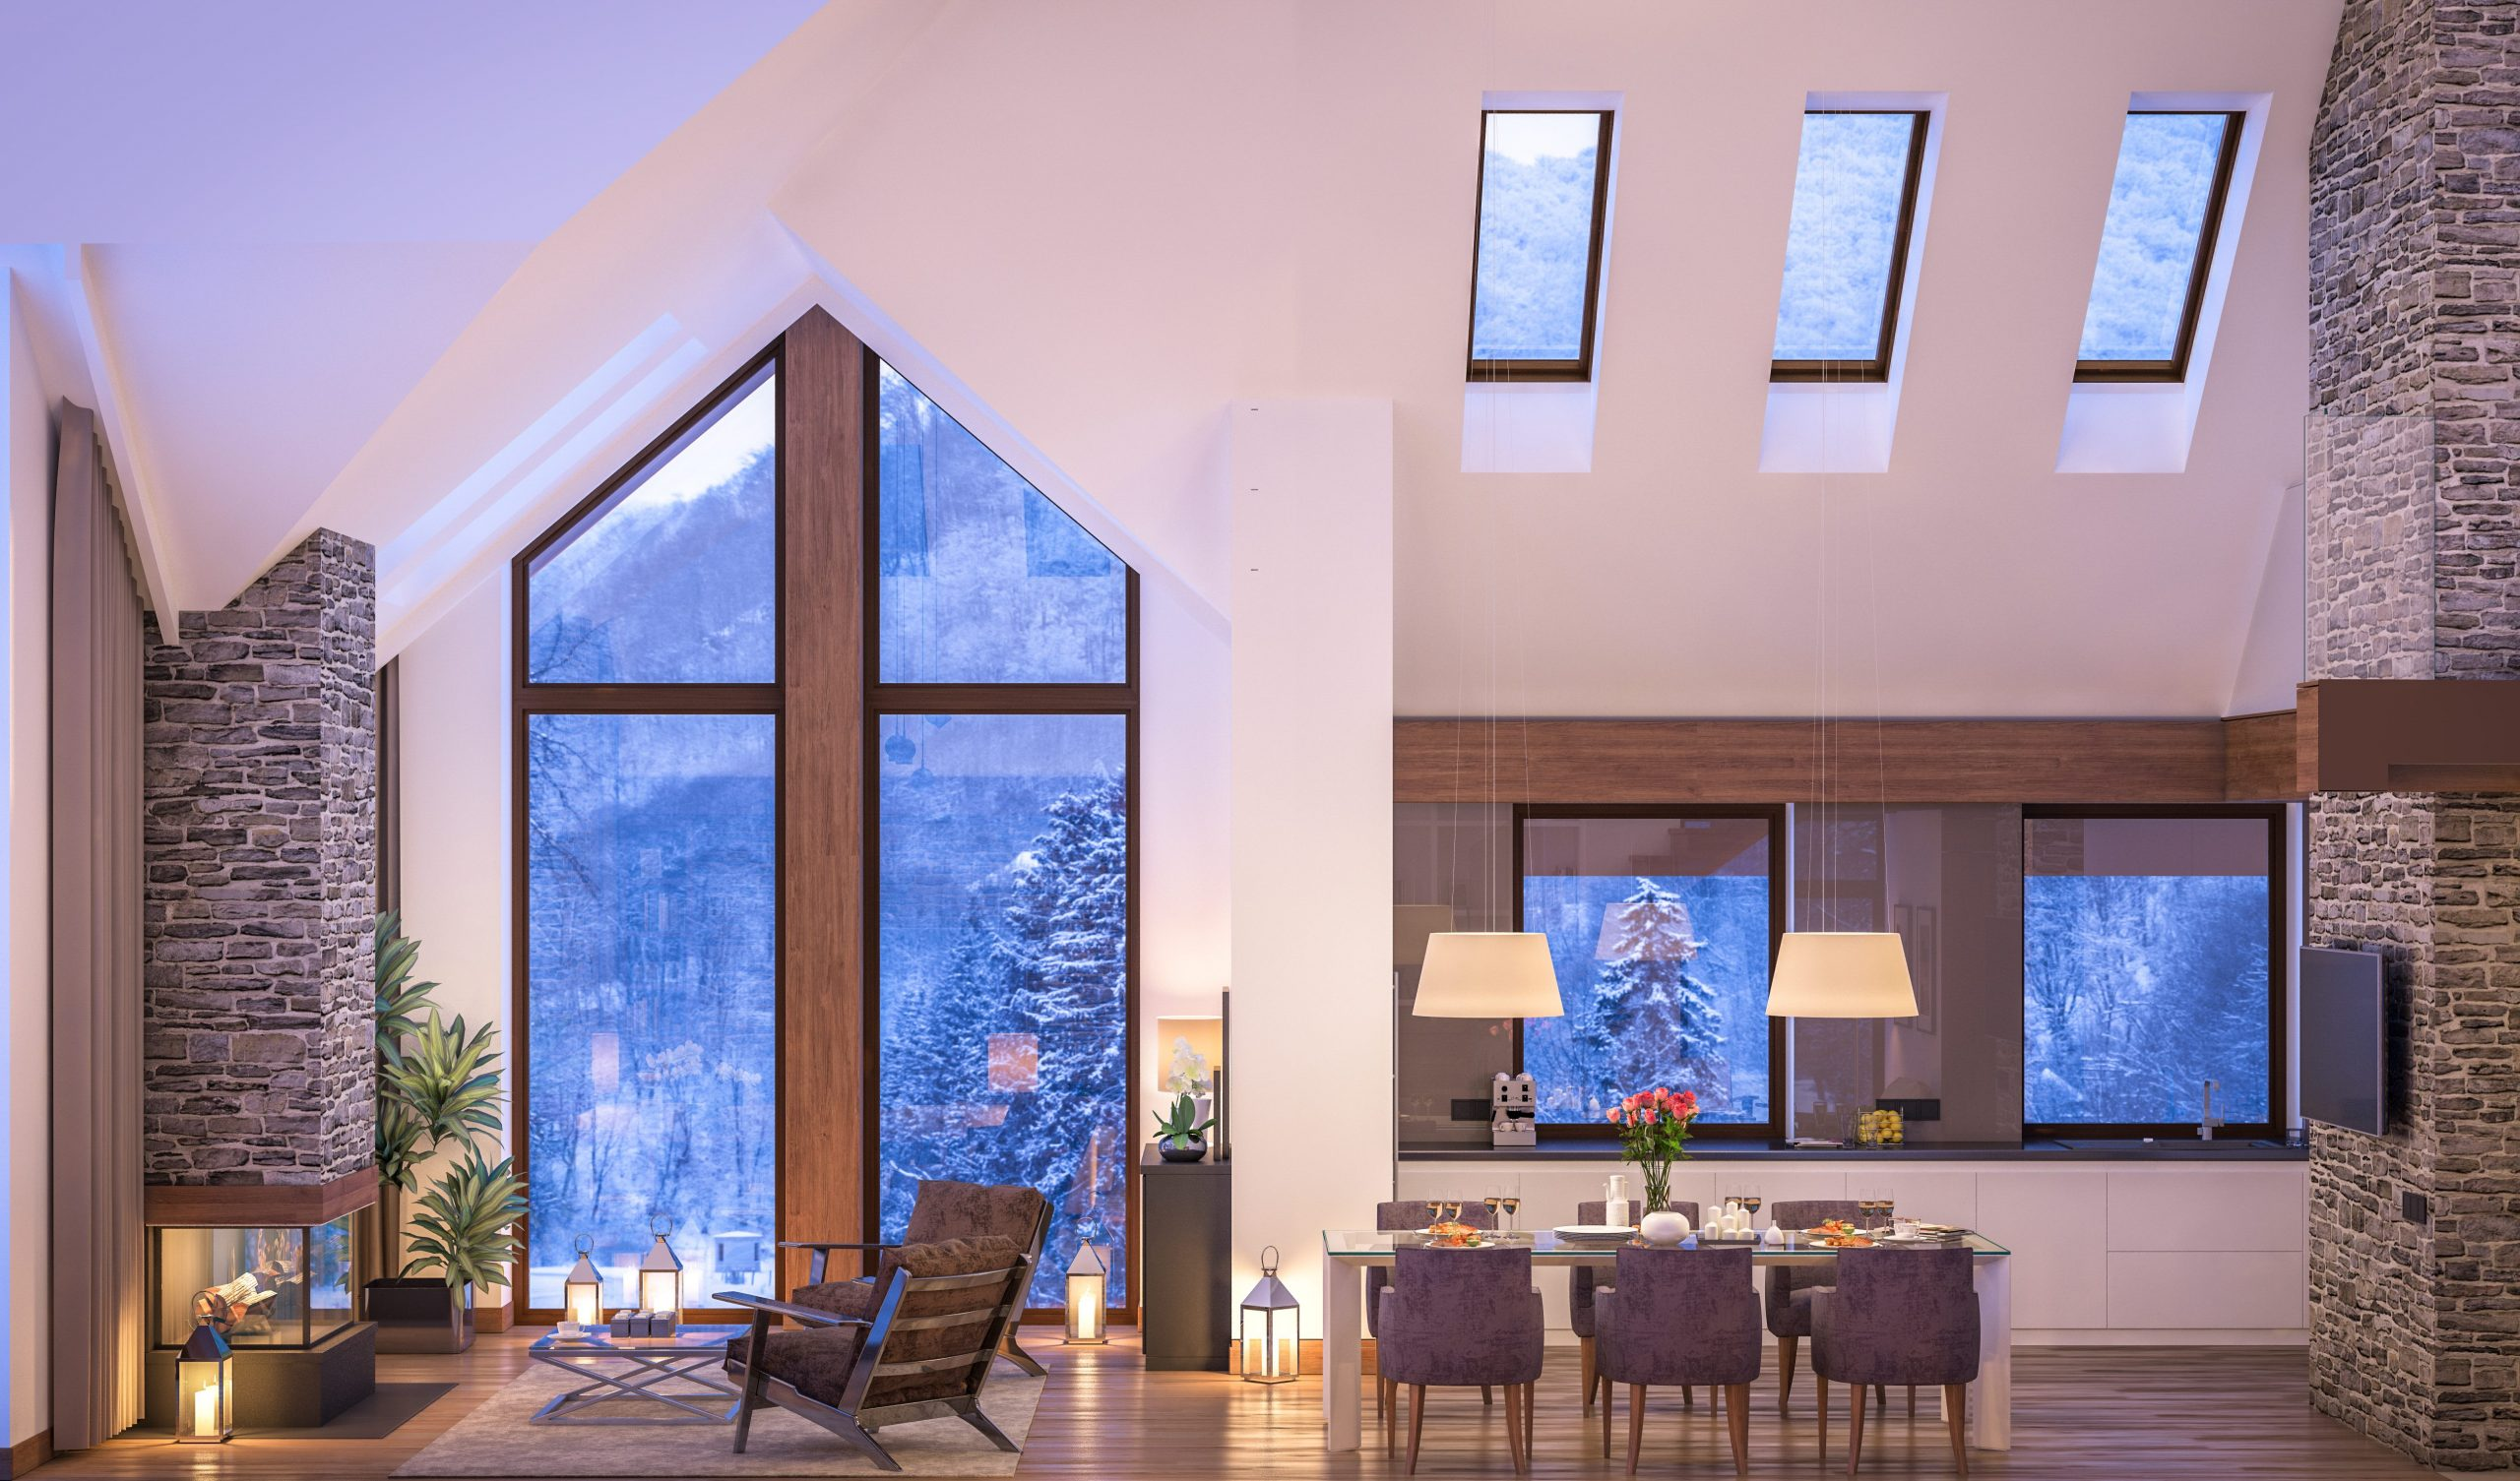 The interior of a luxury home on a snowy mountain